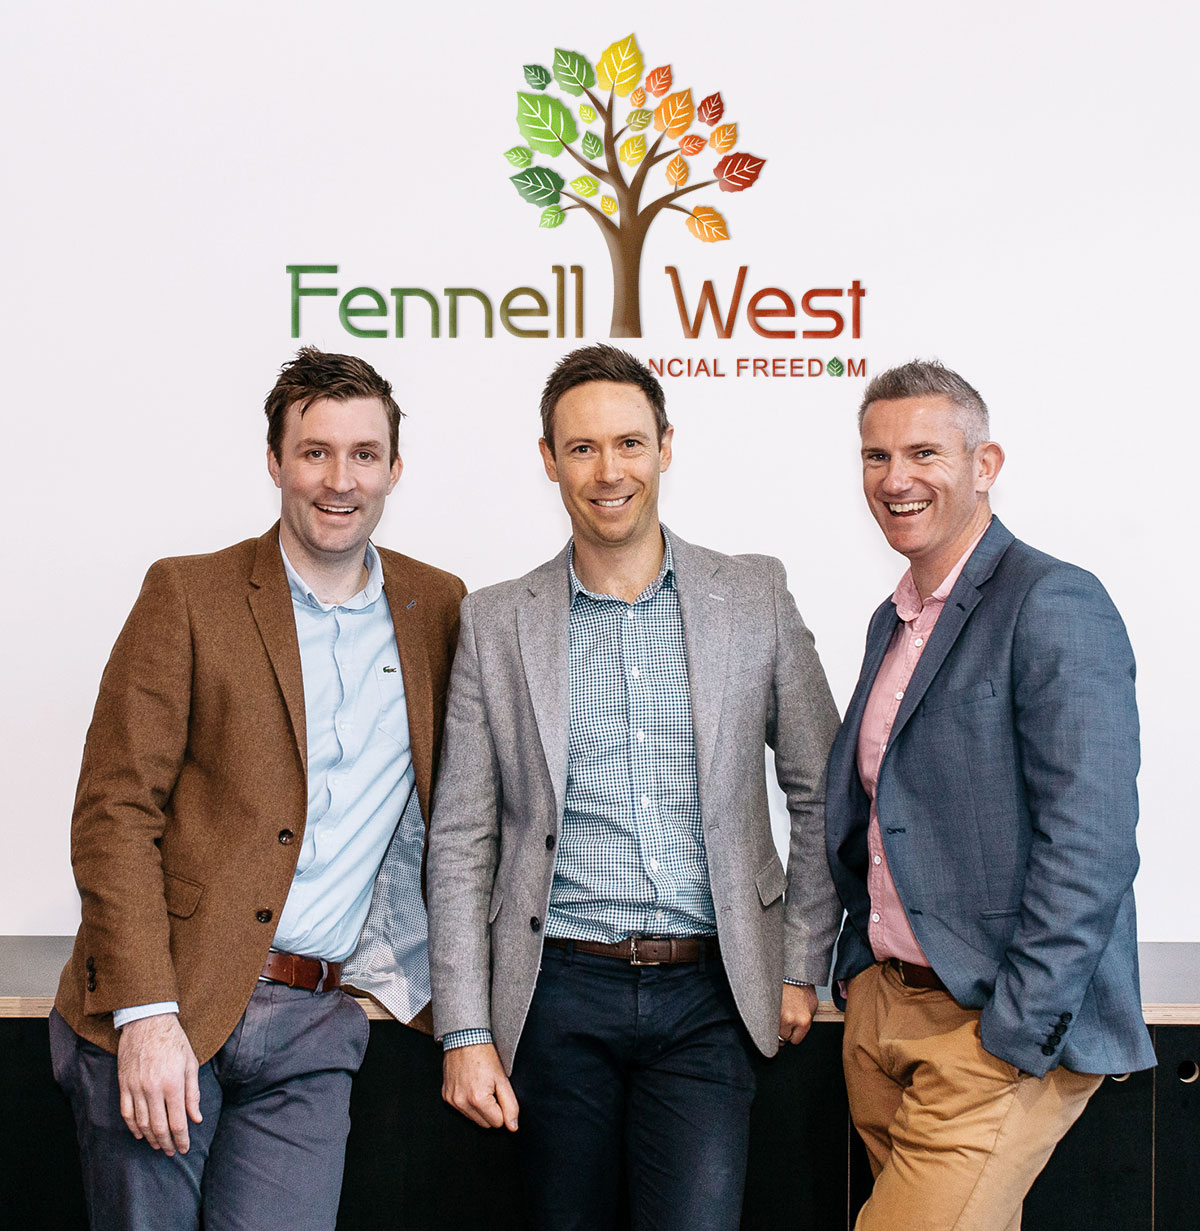 fennell west partners